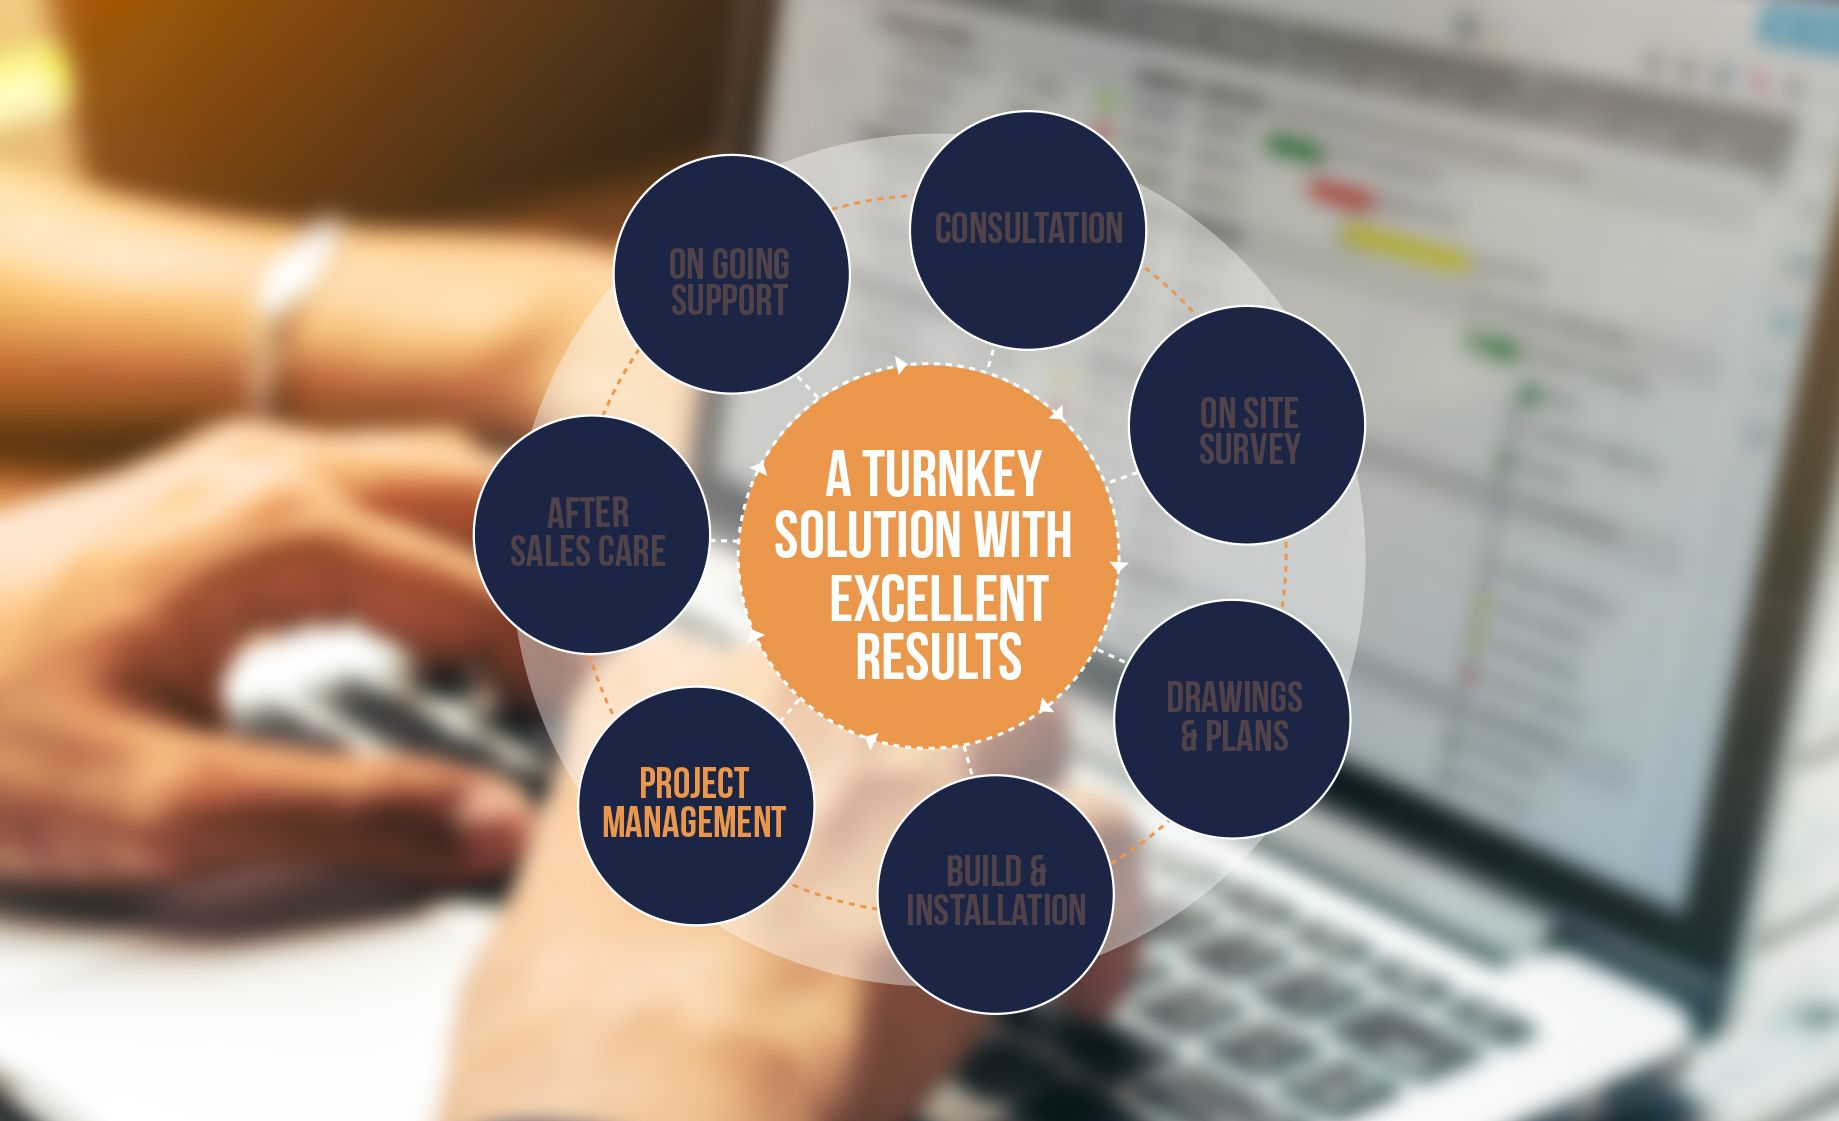 <p><strong>Project management: </strong><br /> At all times of the project, your dedicated project manager will be overseeing the operation and will keep you informed of the progress.</p>